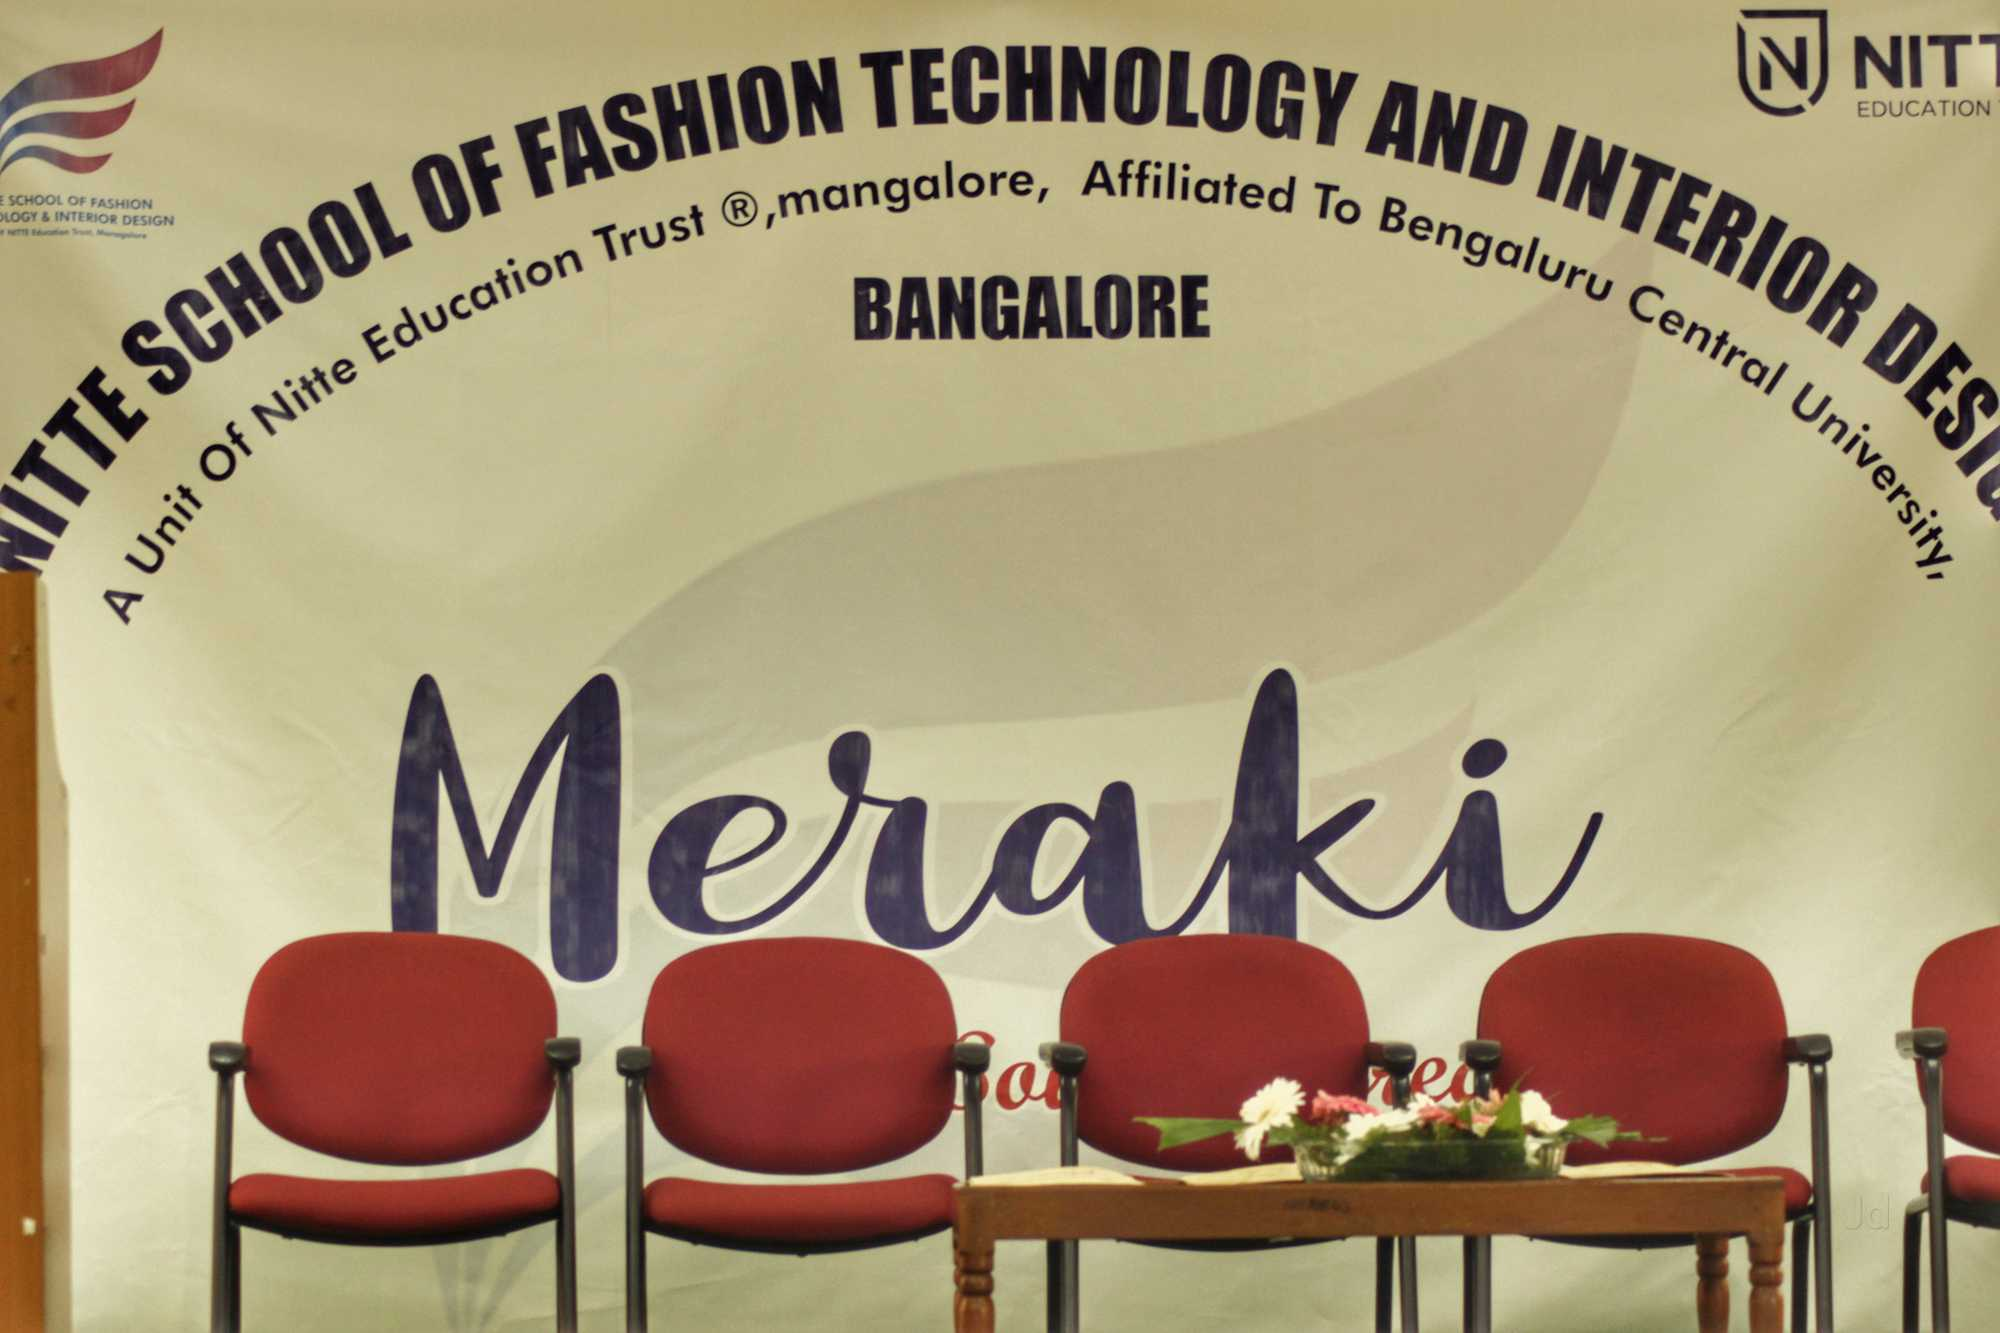 Nitte School Of Fashion Technology And Interior Design Yelahanka Fashion Designing Institutes In Bangalore Justdial